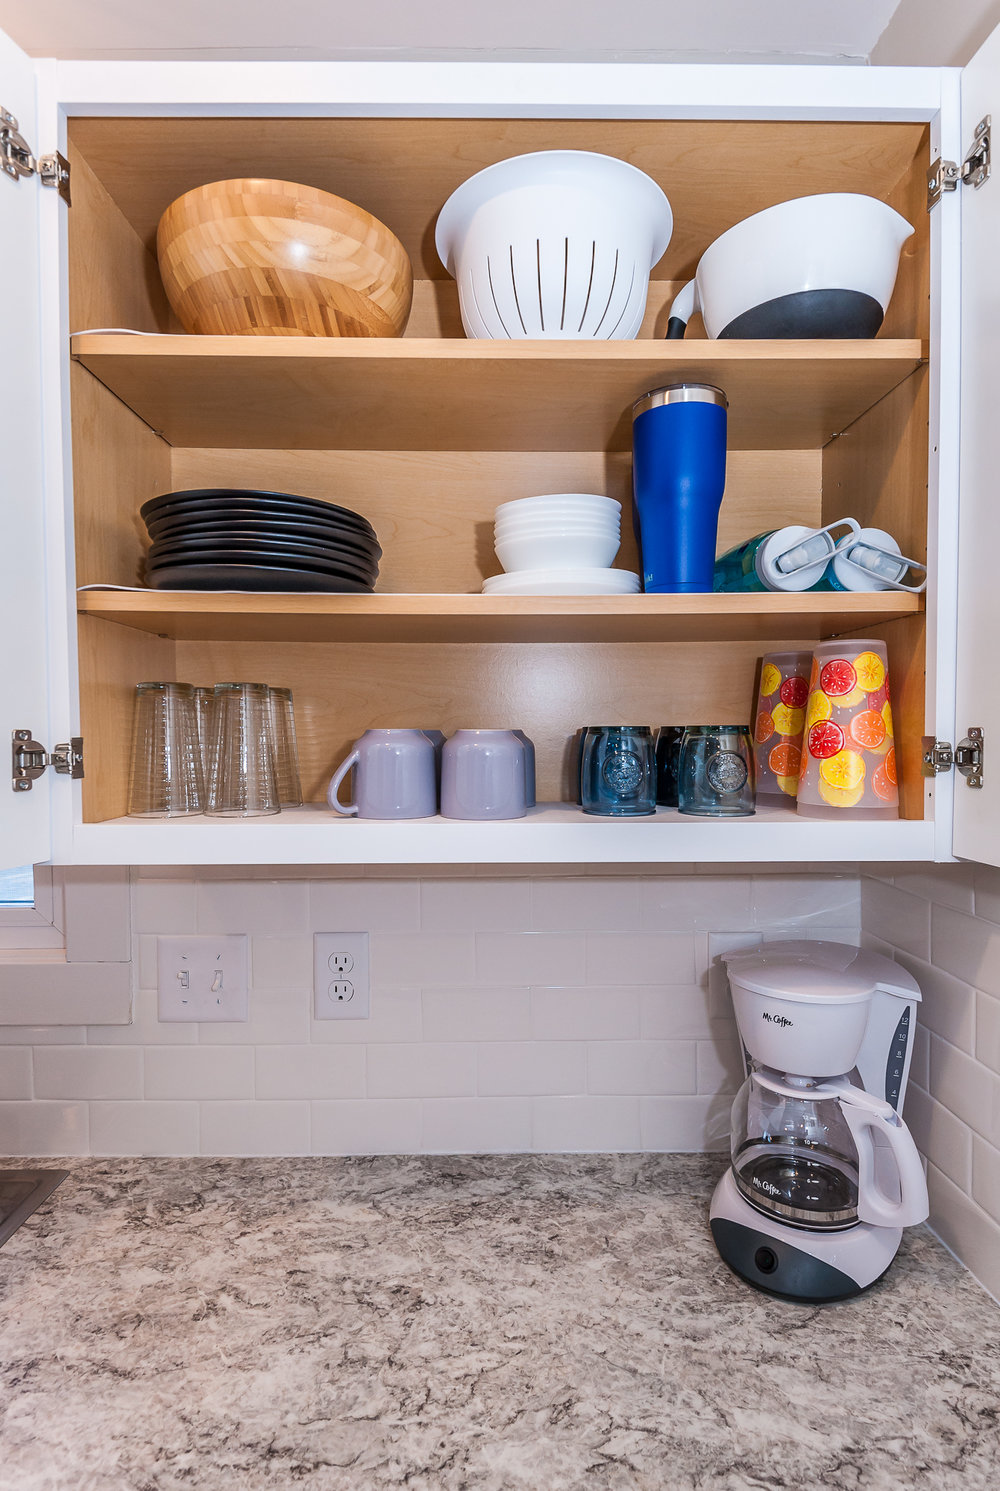 Fully stocked with dinnerware, pots and pans, and so much more.